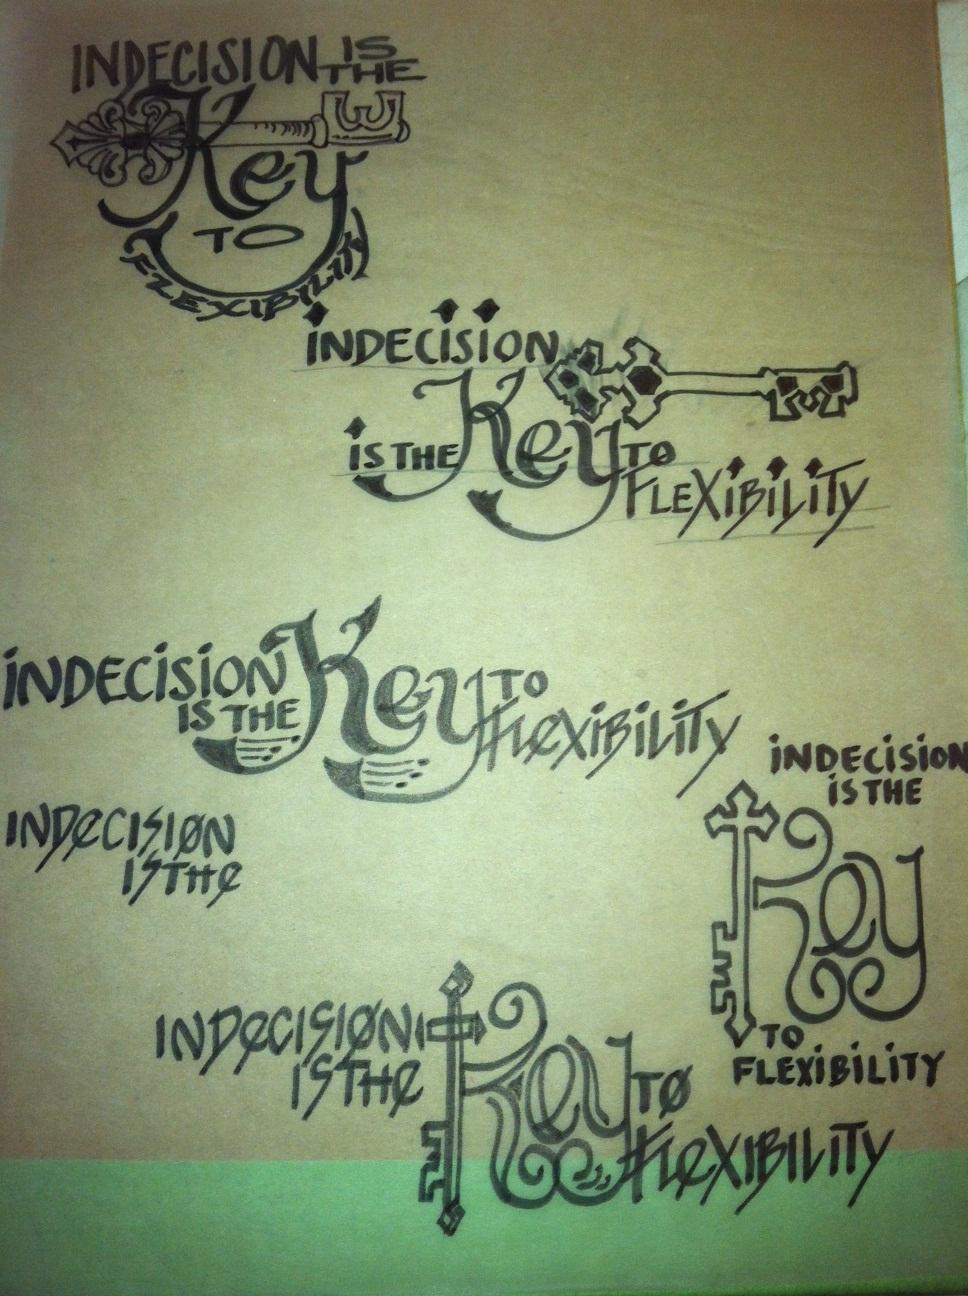 INDECISION is the KEY - image 2 - student project